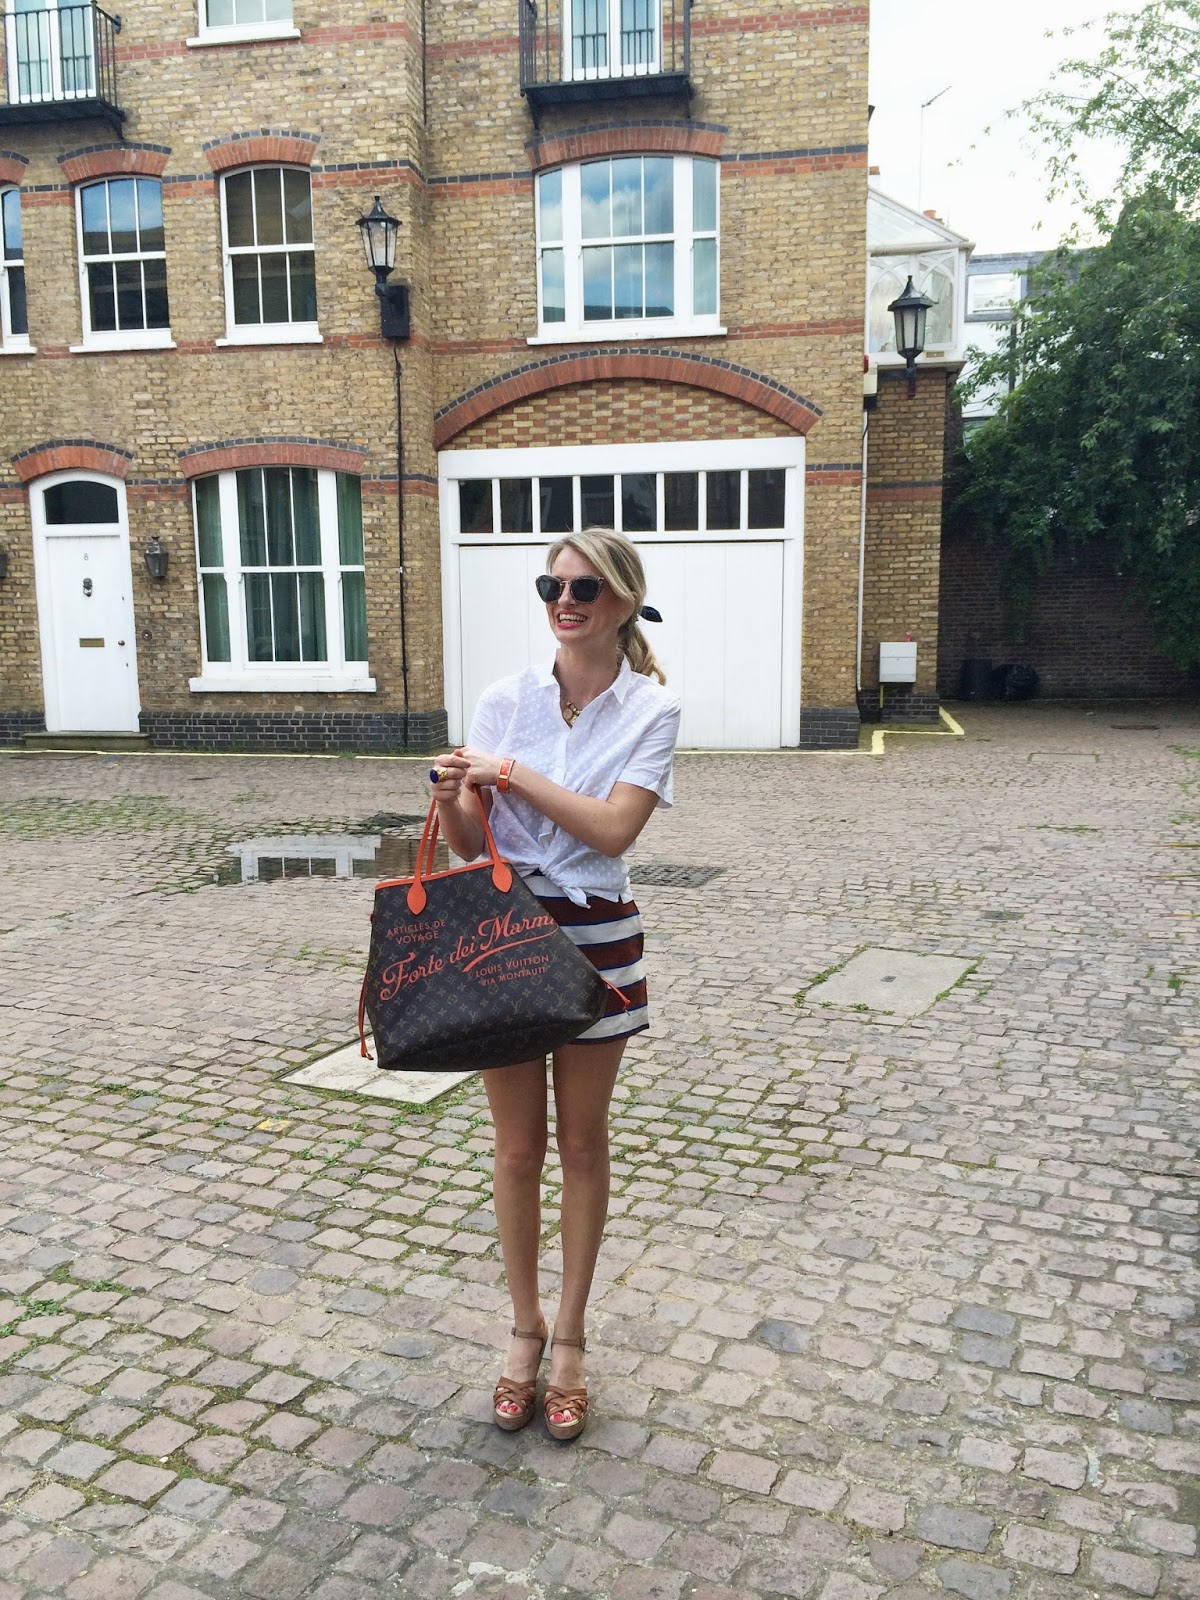 chrissabella, louis vuitton bag, neverful, lv neverfull, white shirt, white blouse, gap white shirt, embroidered white blouse, london fashion blogger, london street style, street style blogger, lookbook